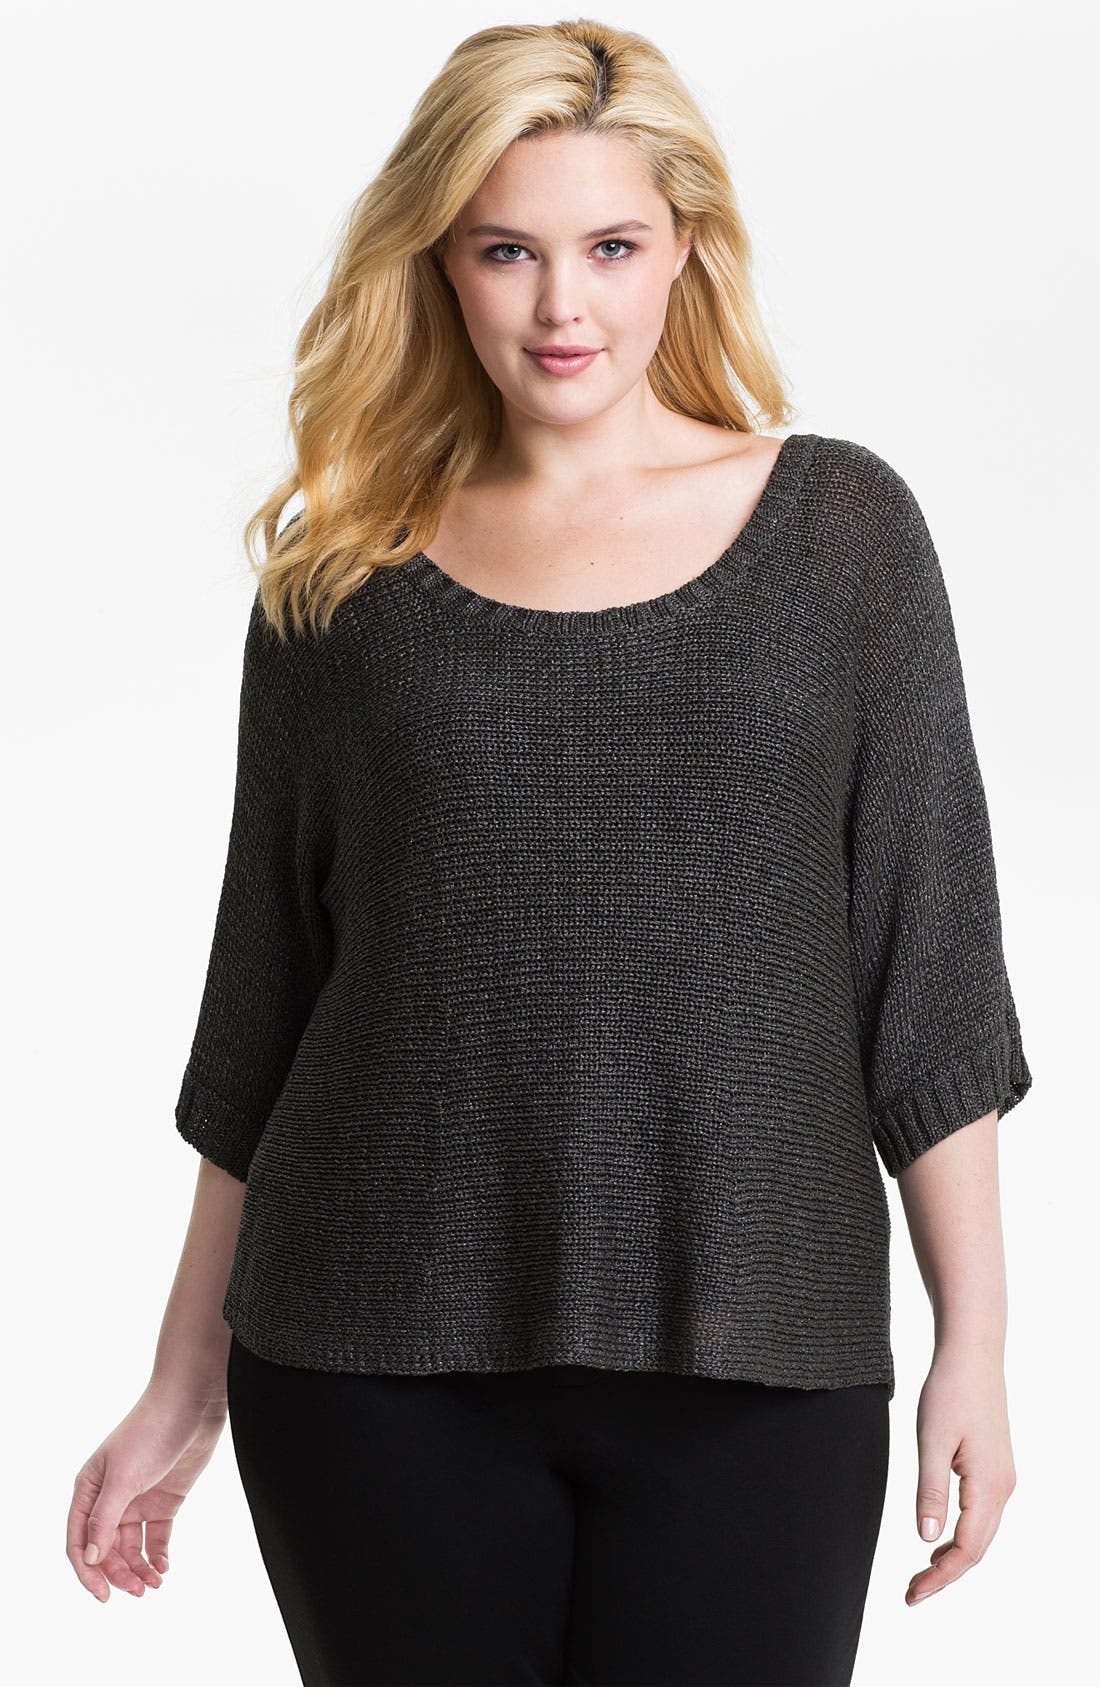 Alternate Image 1 Selected - Eileen Fisher Metallic Open Stitch Sweater (Plus)